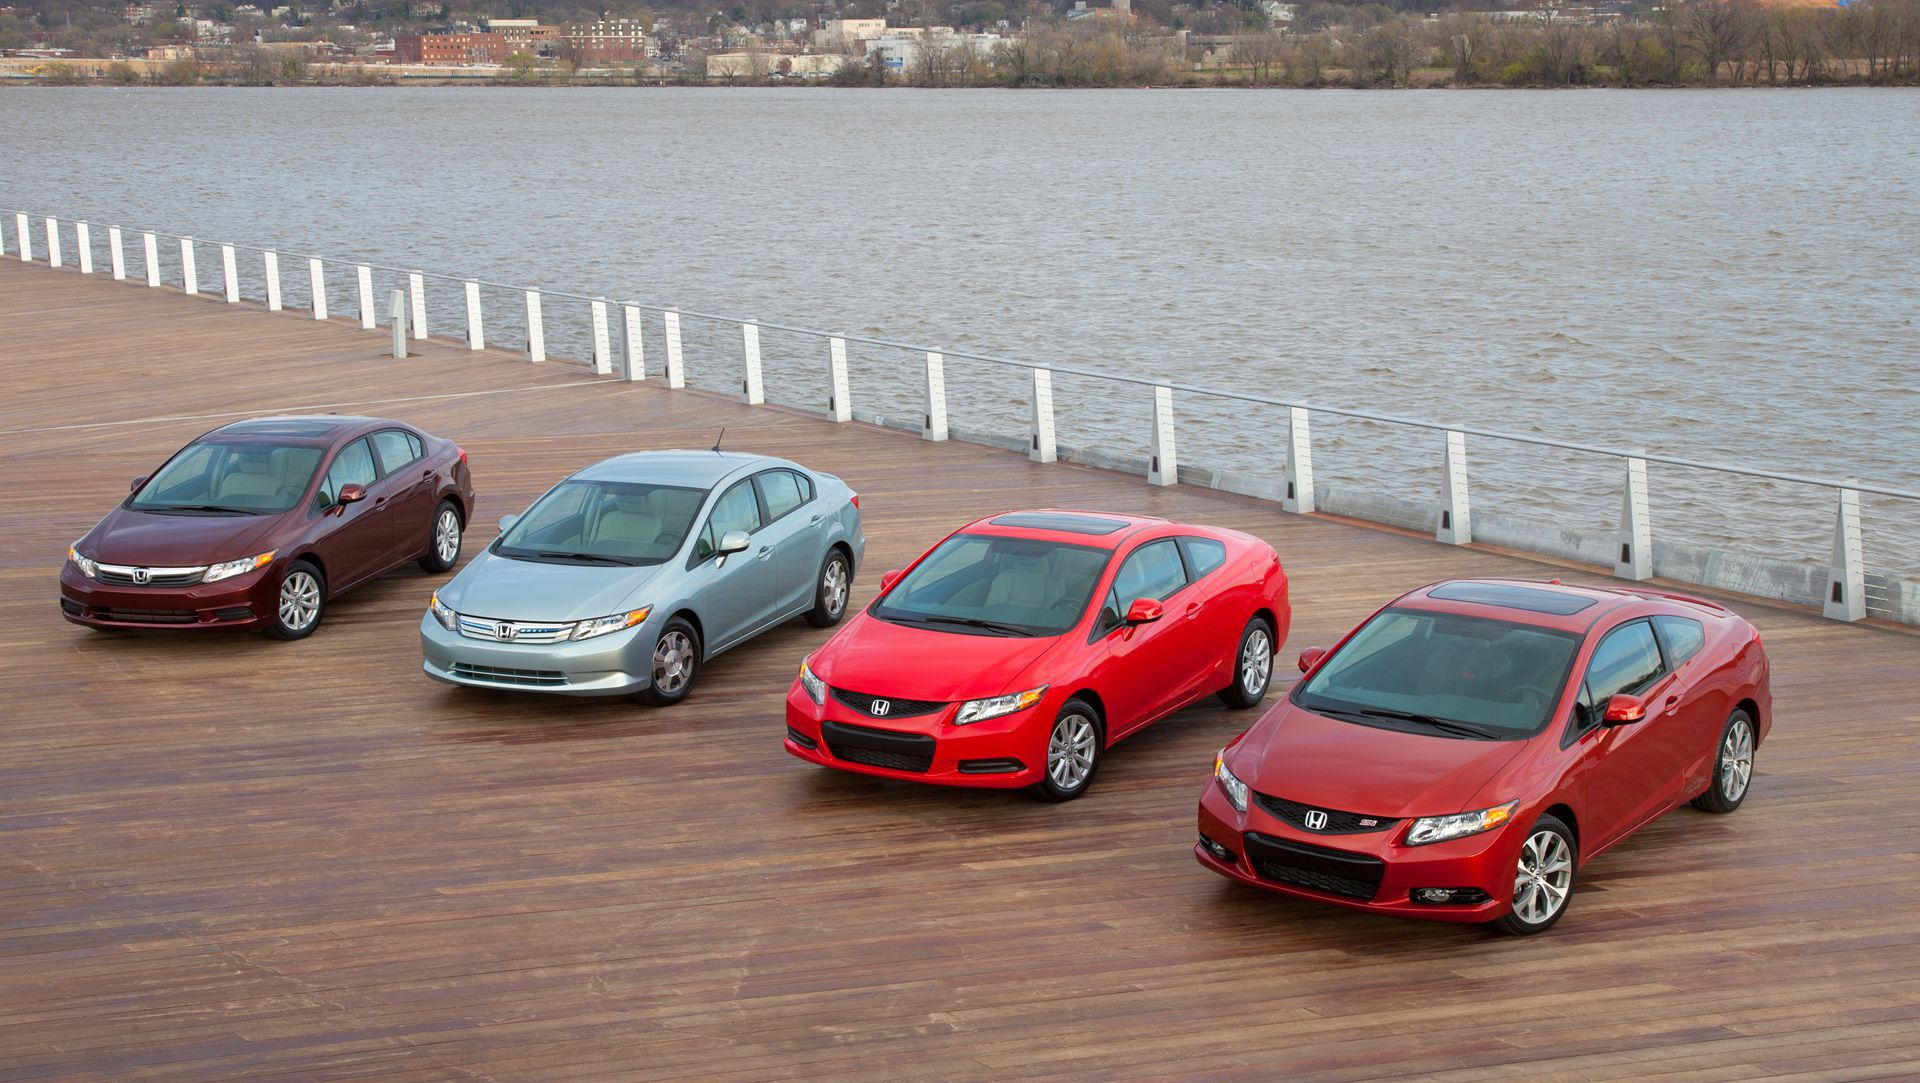 Honda civic named to about s best new cars of 2012 list